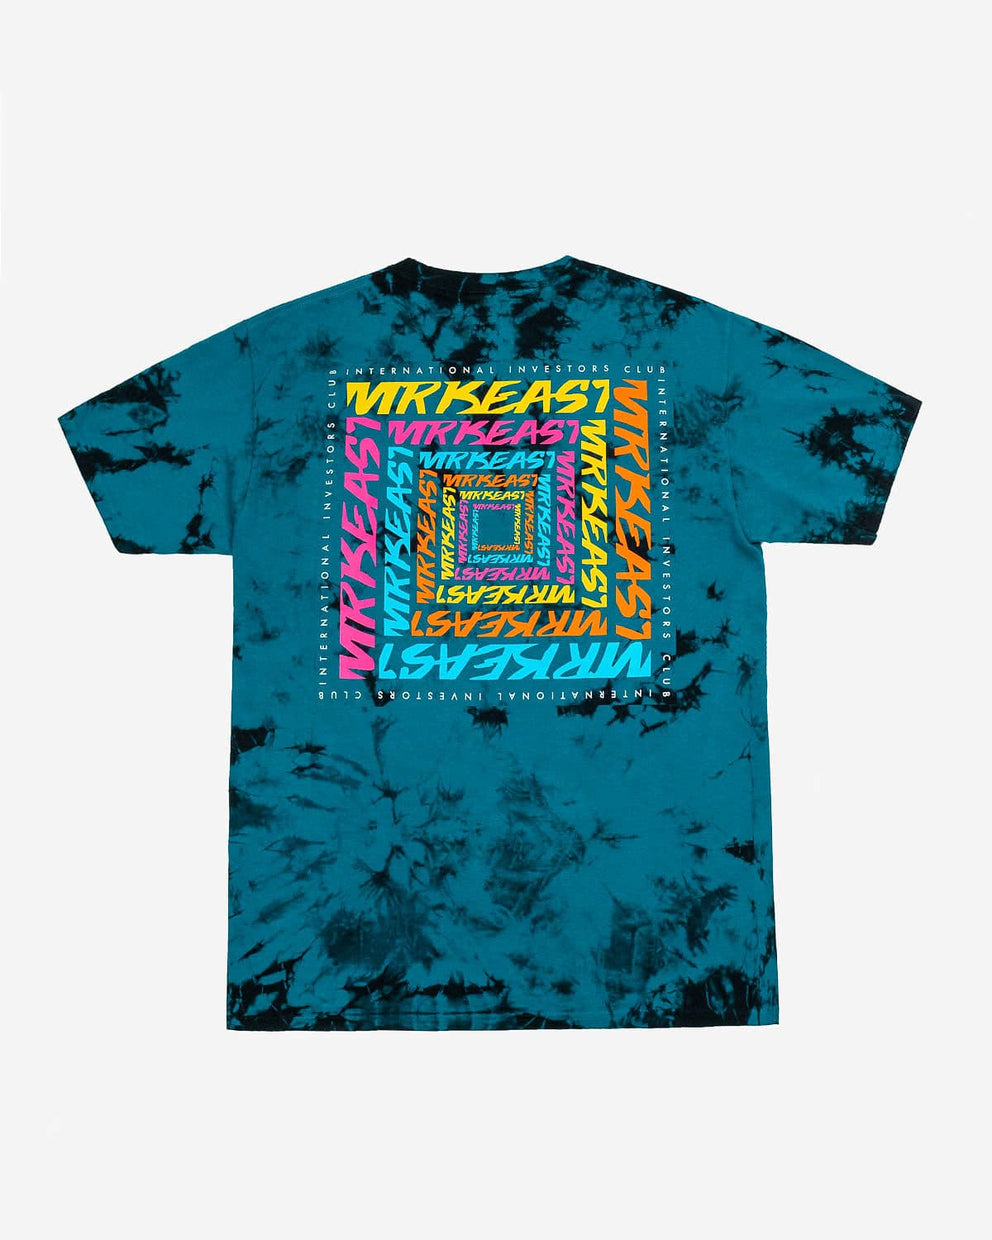 MrBeast 'Infinity Box' Crystal Wash Tee